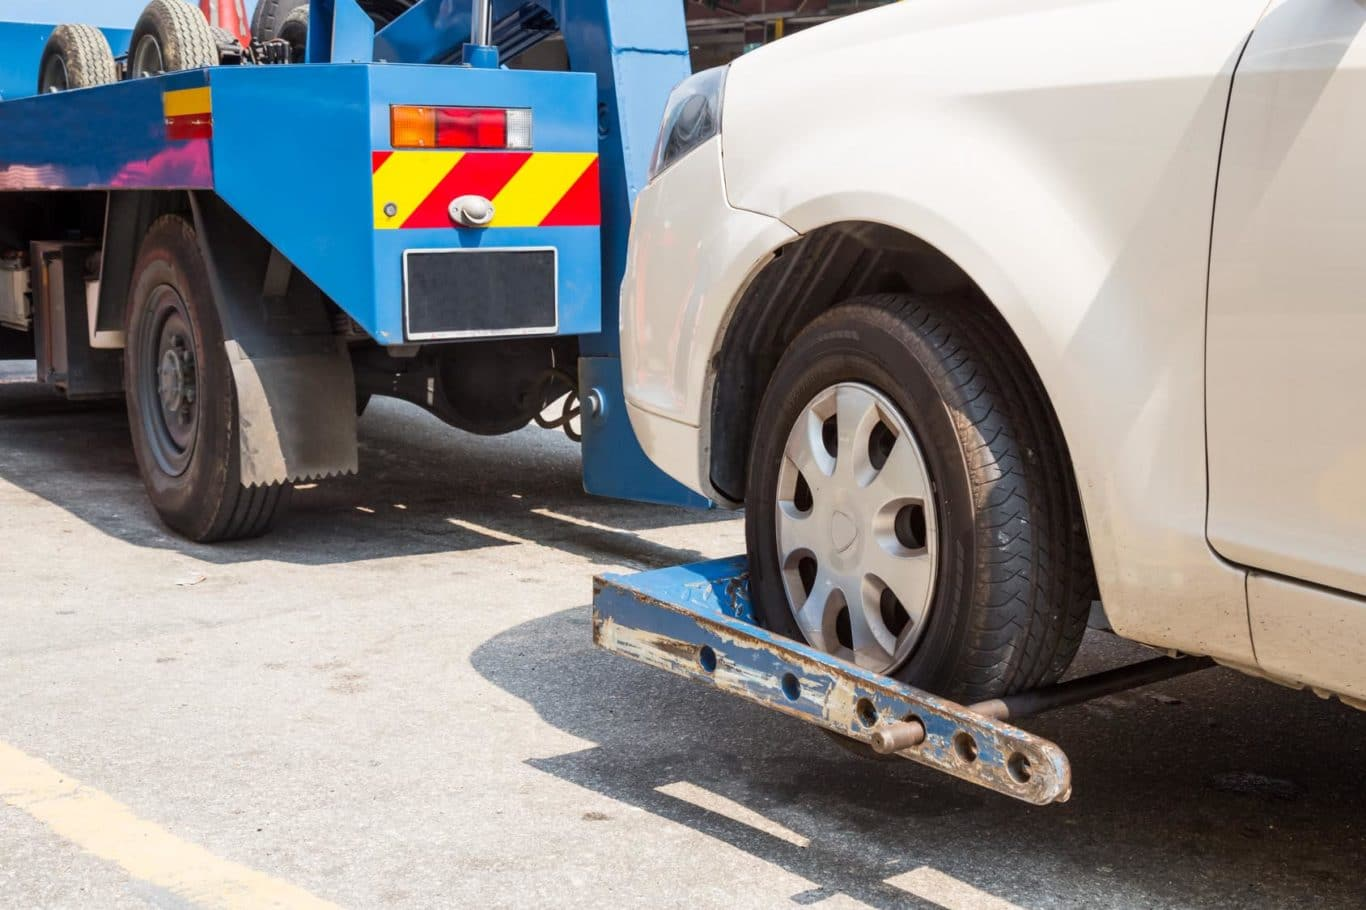 Carbury expert Roadside Assistance services